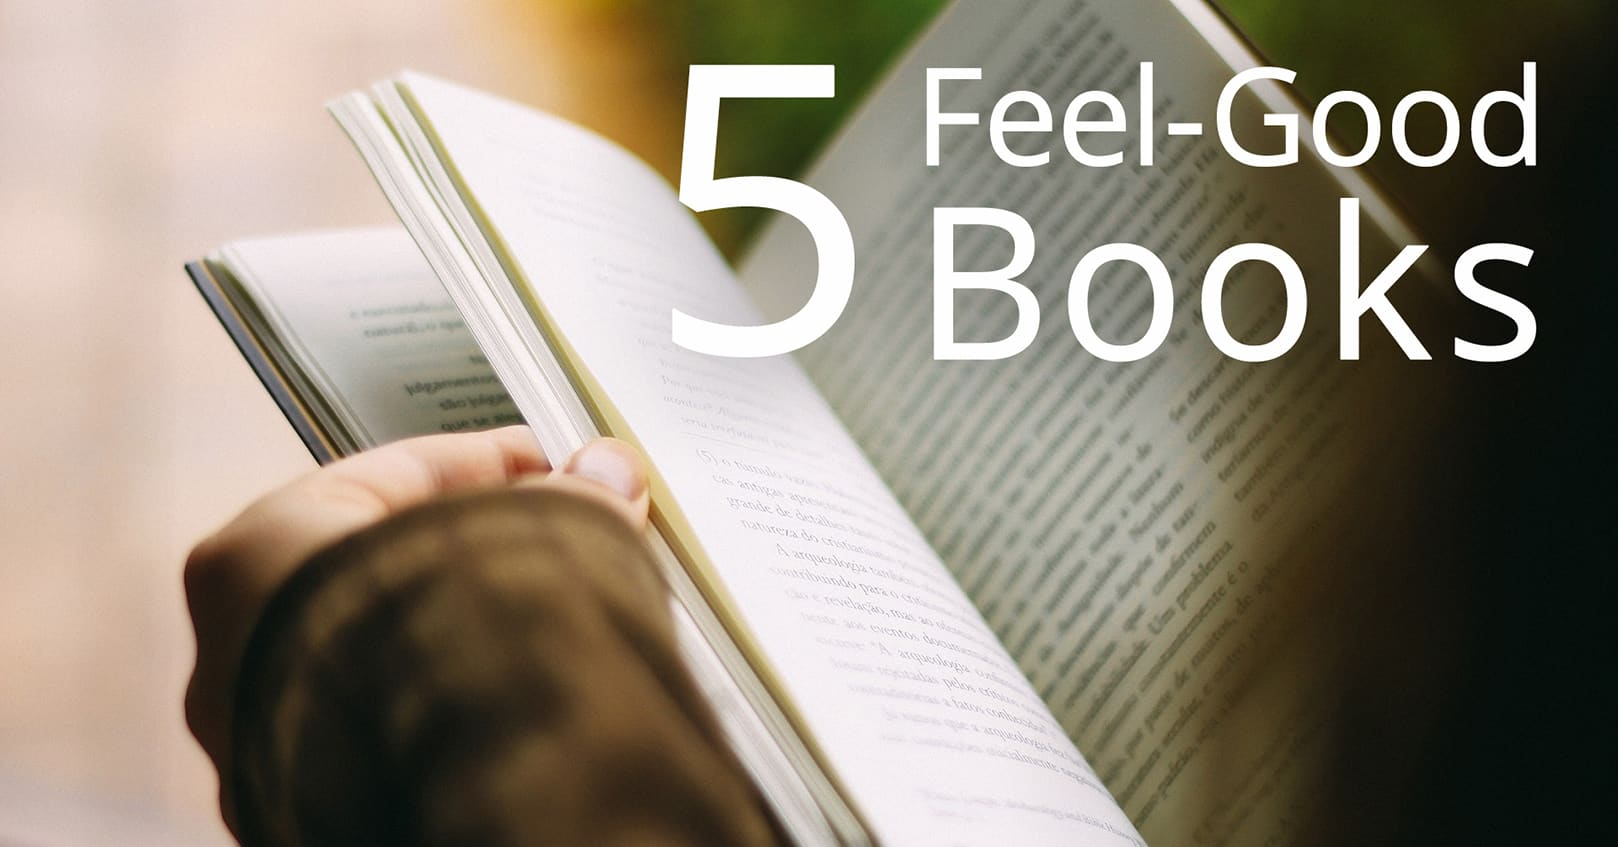 5 Feel-Good Books